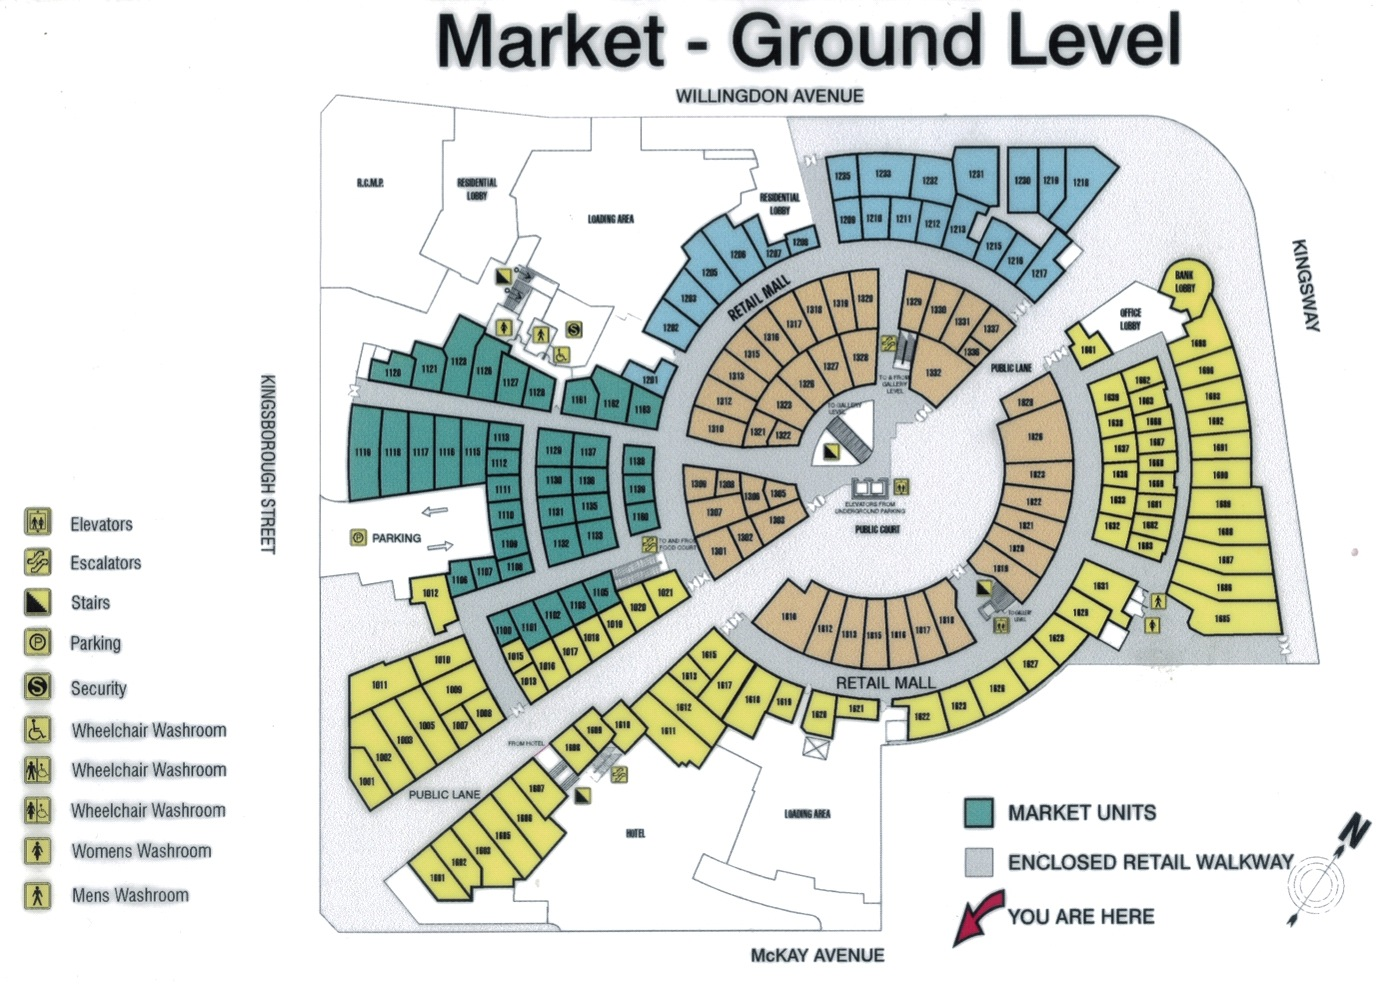 mall of georgia map with Mallmap on Belk Hires Investment Firm To Investigate Possible  pany Sale also The Galleria likewise Storelocator additionally These Middle In e Countries Are Poised To Be e Rich further South Carolina Map With Counties.